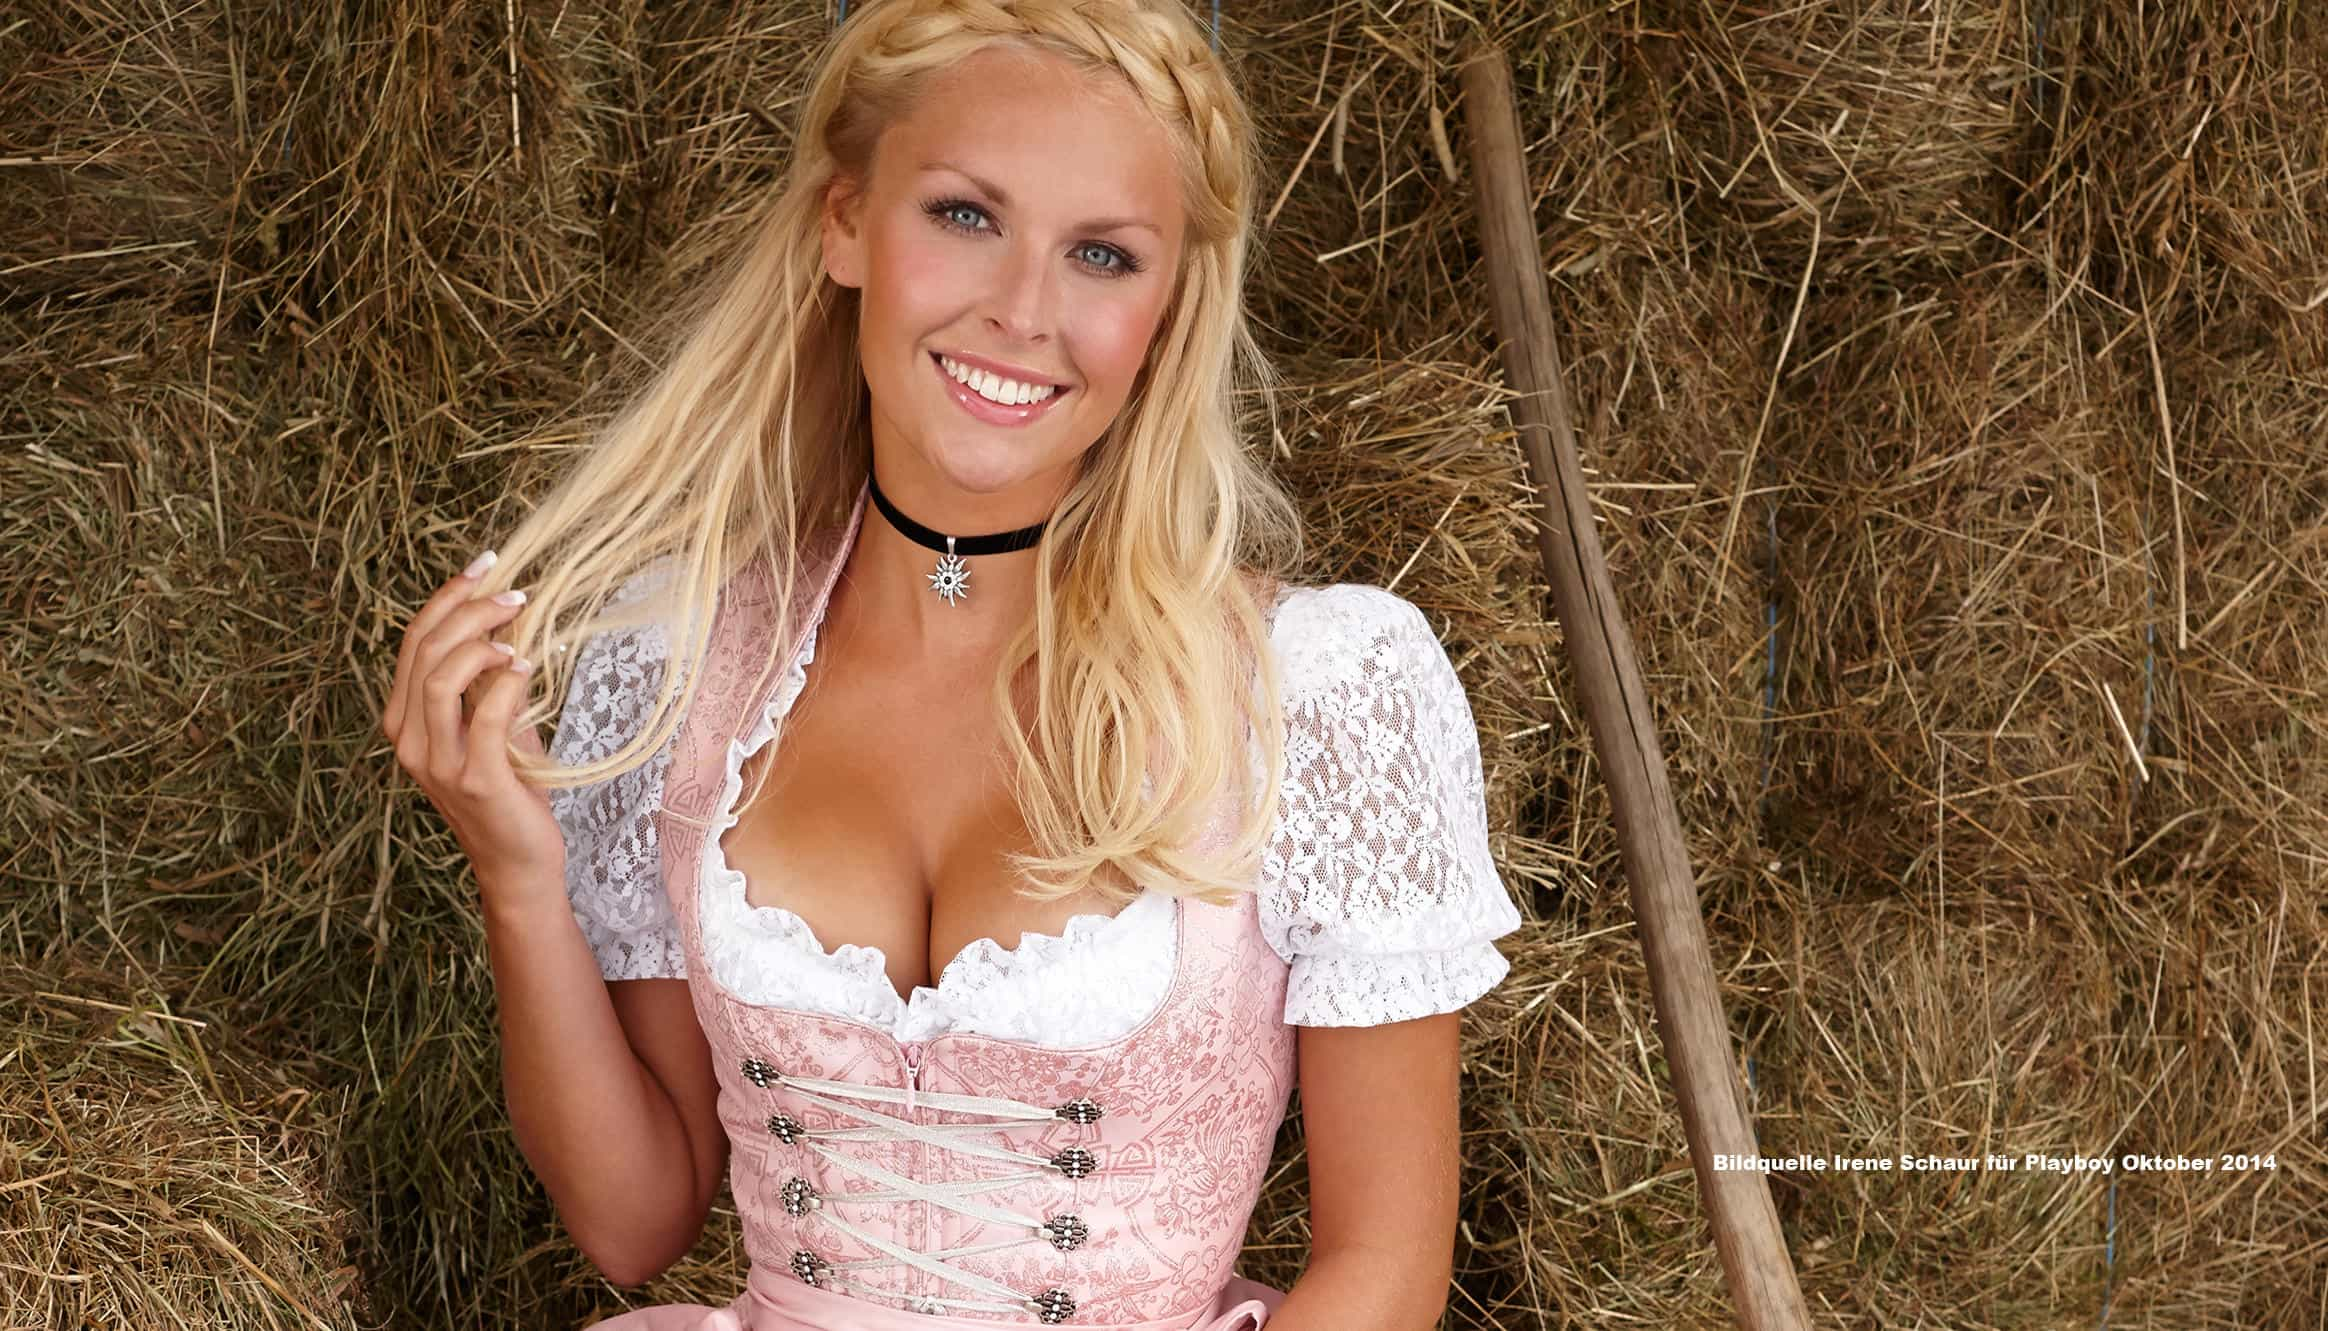 Denise Cotte - Das sexy Wiesn Playmate 2014 - MENIFY